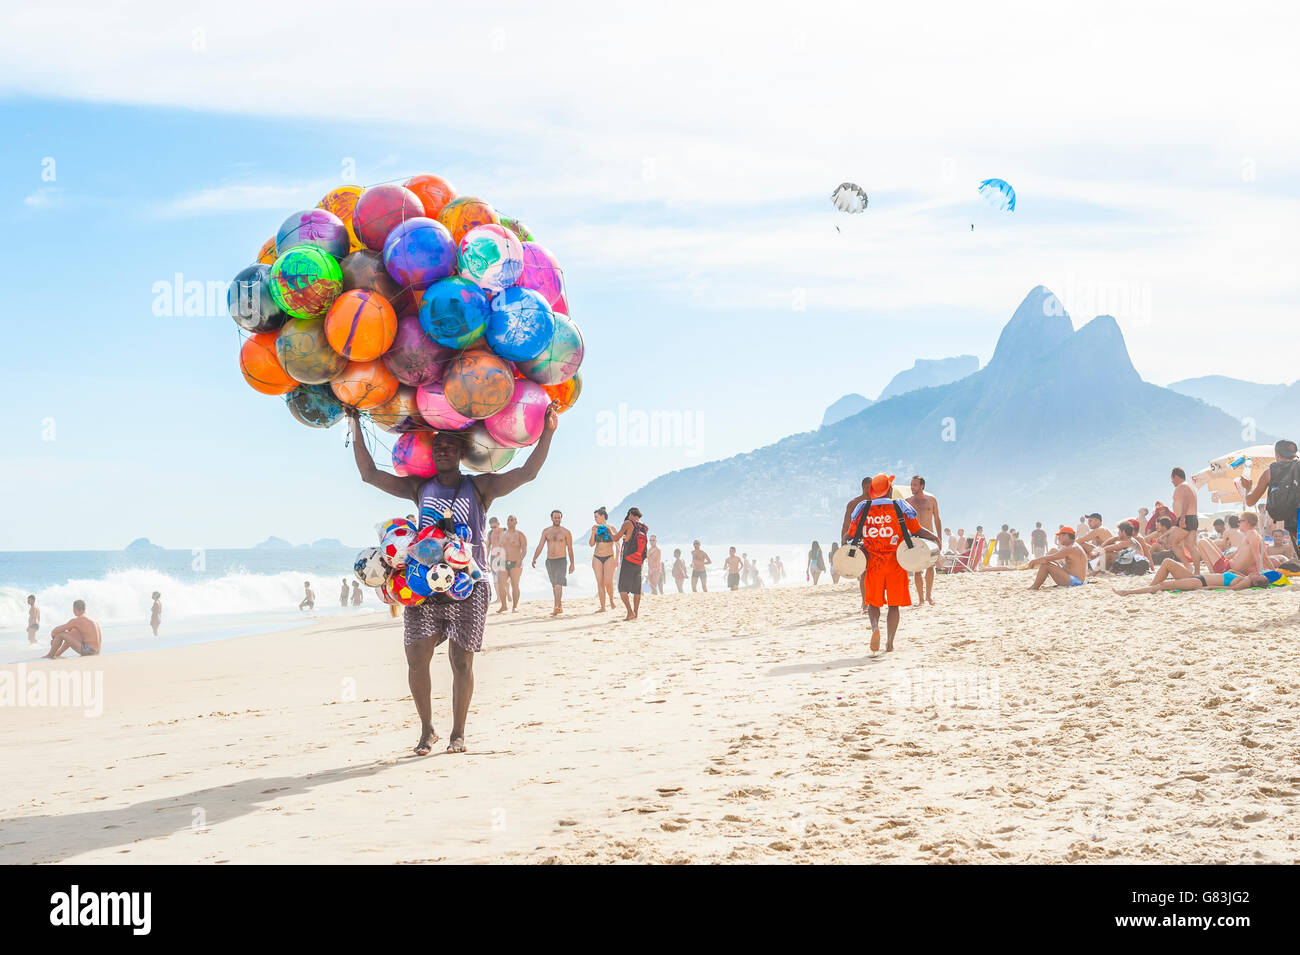 RIO DE JANEIRO - JANUARY 20, 2013: Beach vendor selling colorful beach balls carries his merchandise along Ipanema - Stock Image